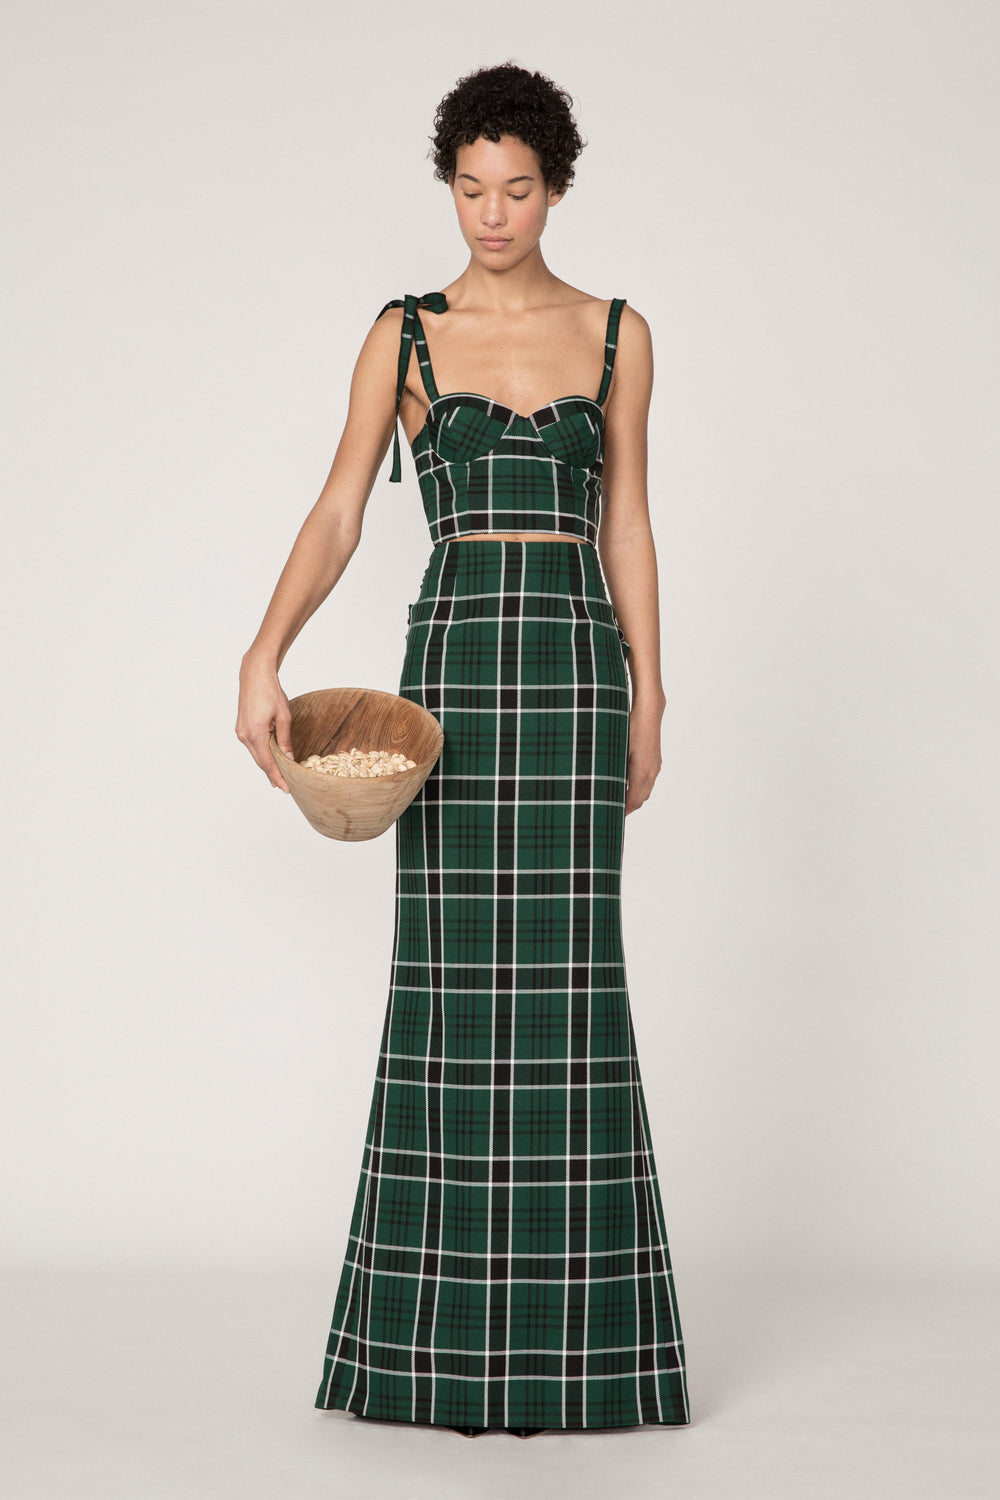 Rosie Assoulin Fall 2019 Bustino. Cropped bustier top. Bow on right shoulder. Hook and eye closure in back. Green plaid. 100% Polyester. Sizes 0 - 12.